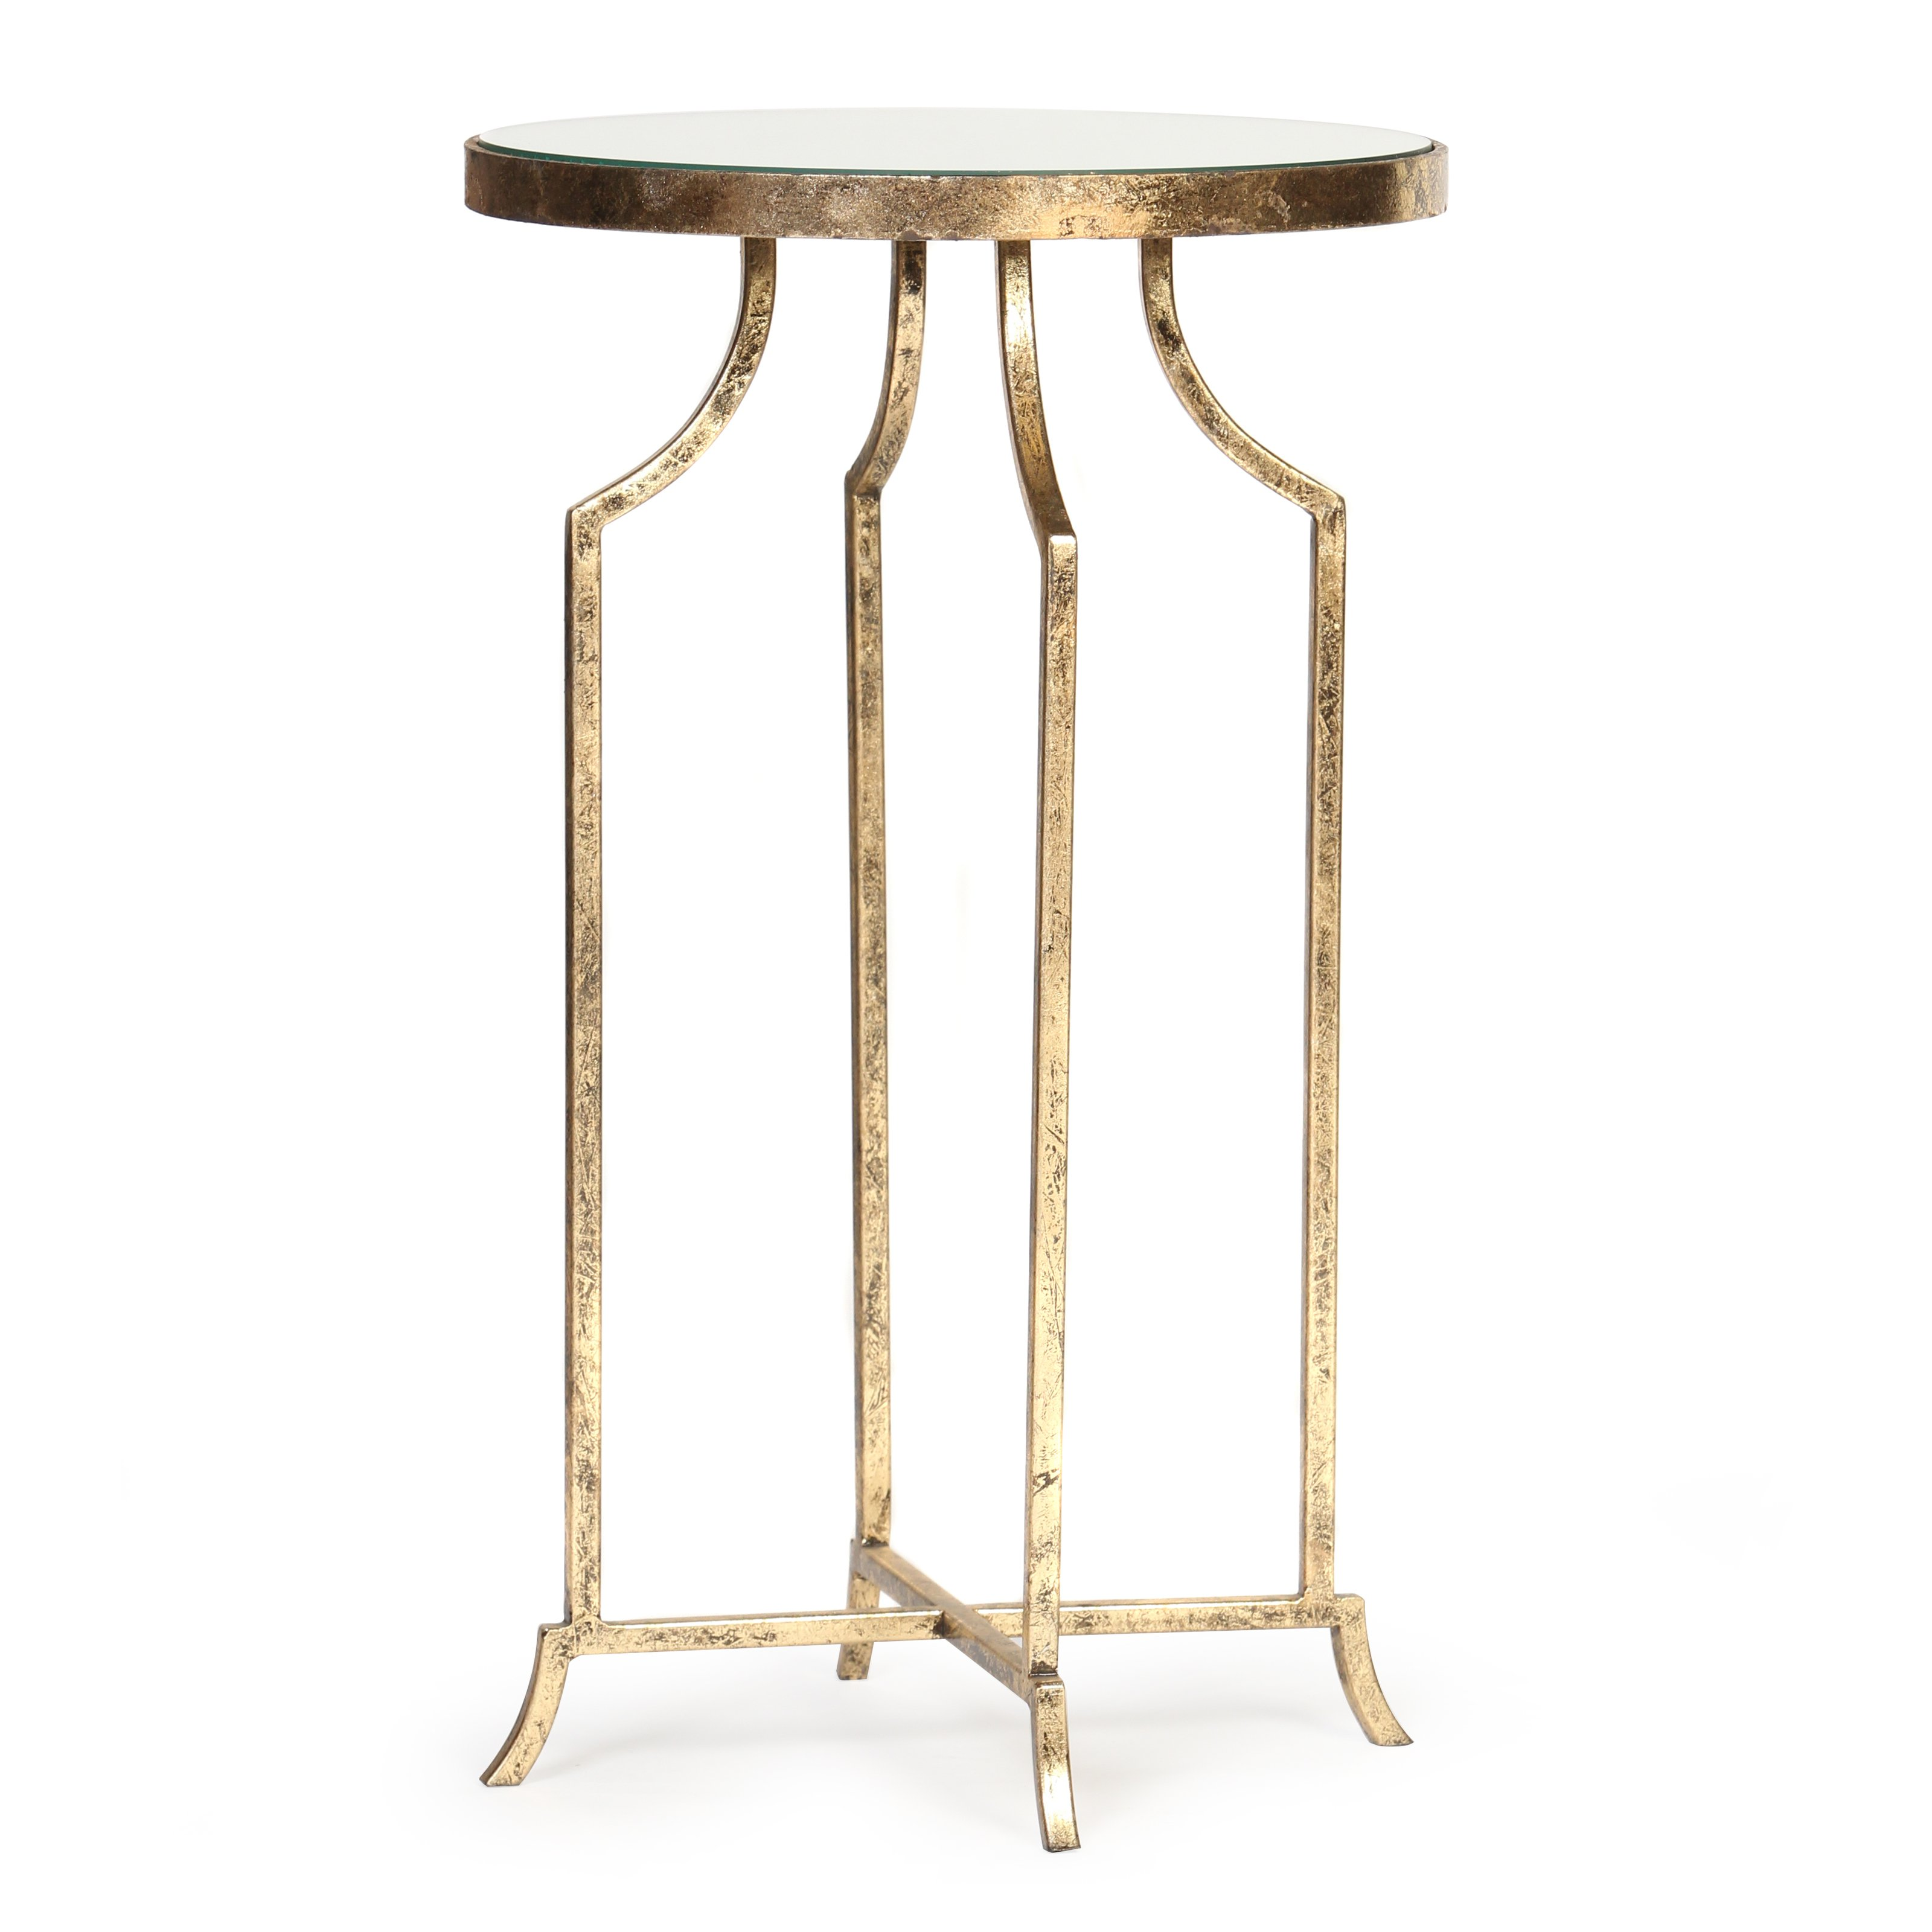 knox and harrison round accent table gold leaf master faux leather dining chairs diy industrial coffee lucite acrylic driftwood emerald small end silver lamps distressed entry